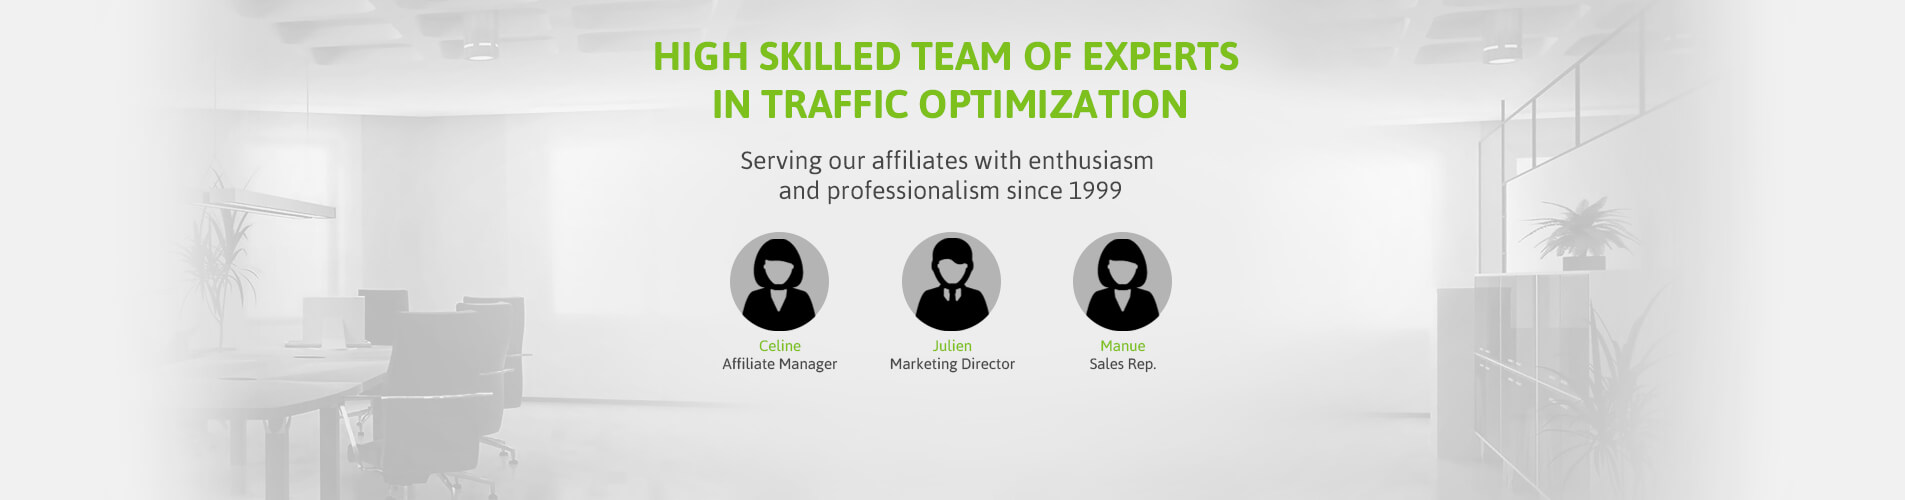 High skilled team of experts in traffic optimisation